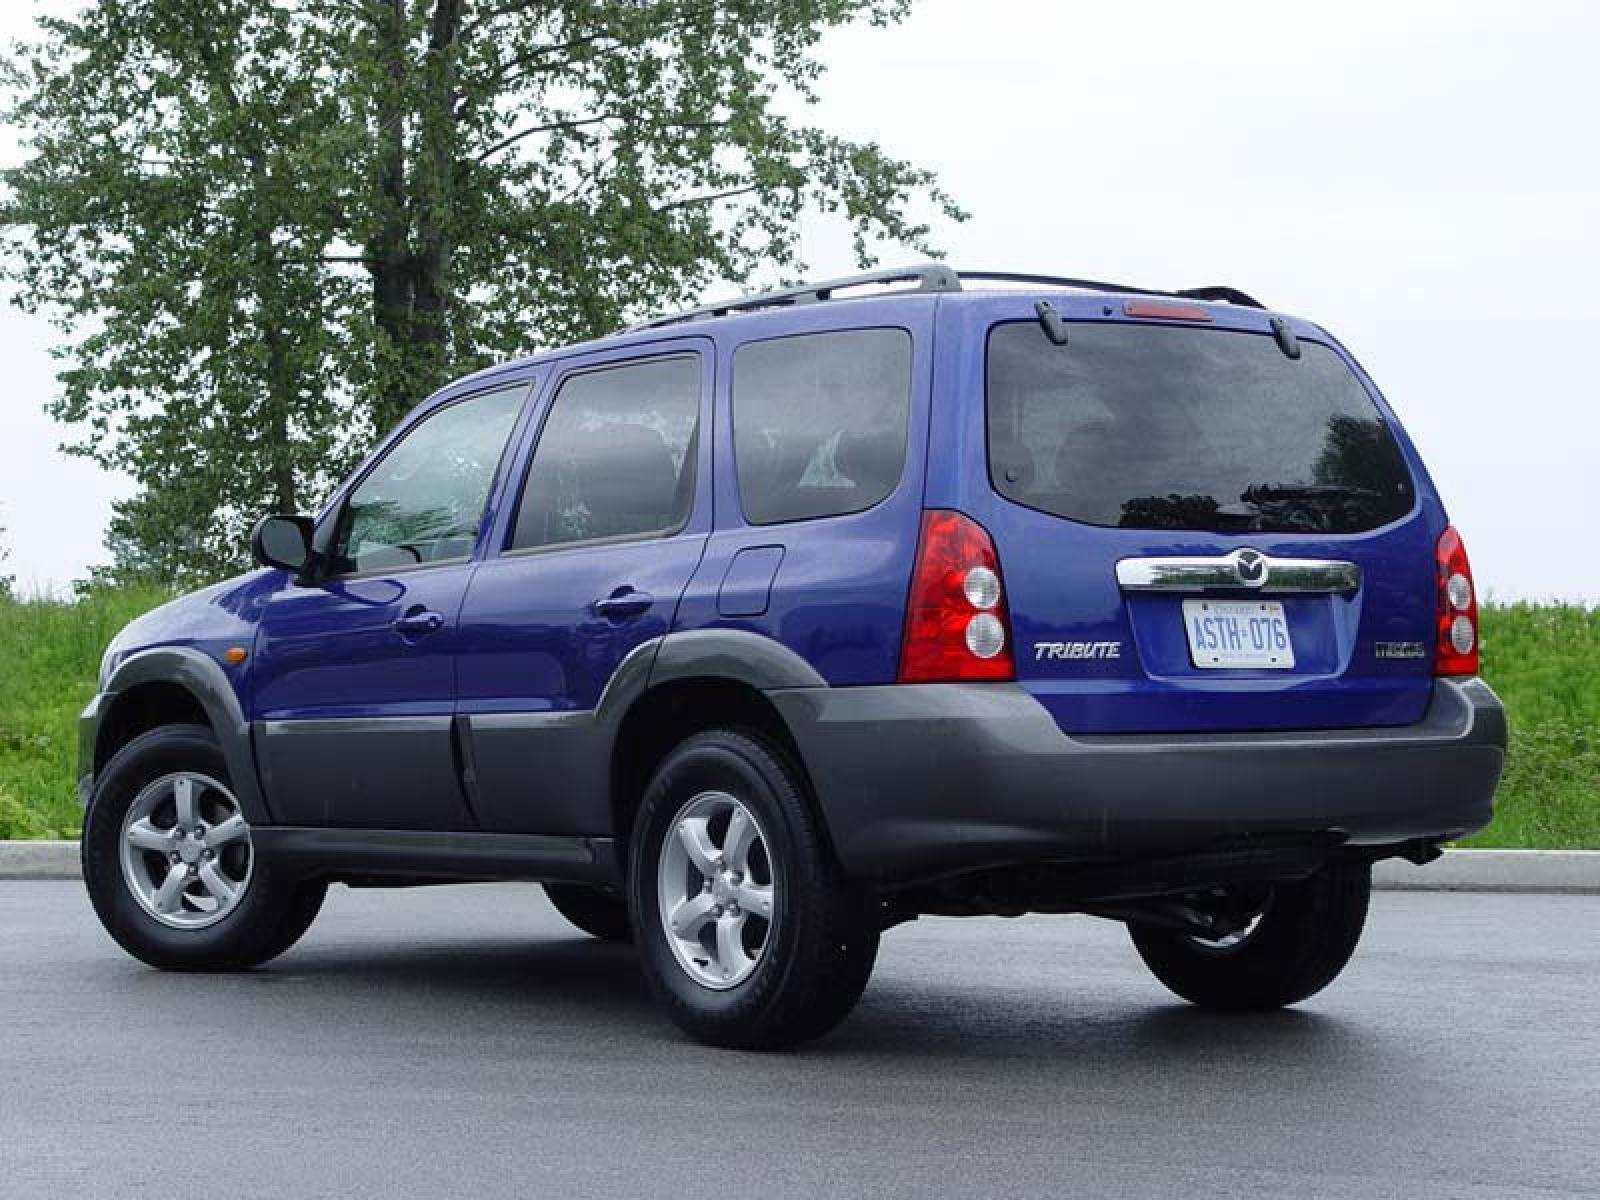 2005 mazda tribute information and photos zombiedrive. Black Bedroom Furniture Sets. Home Design Ideas